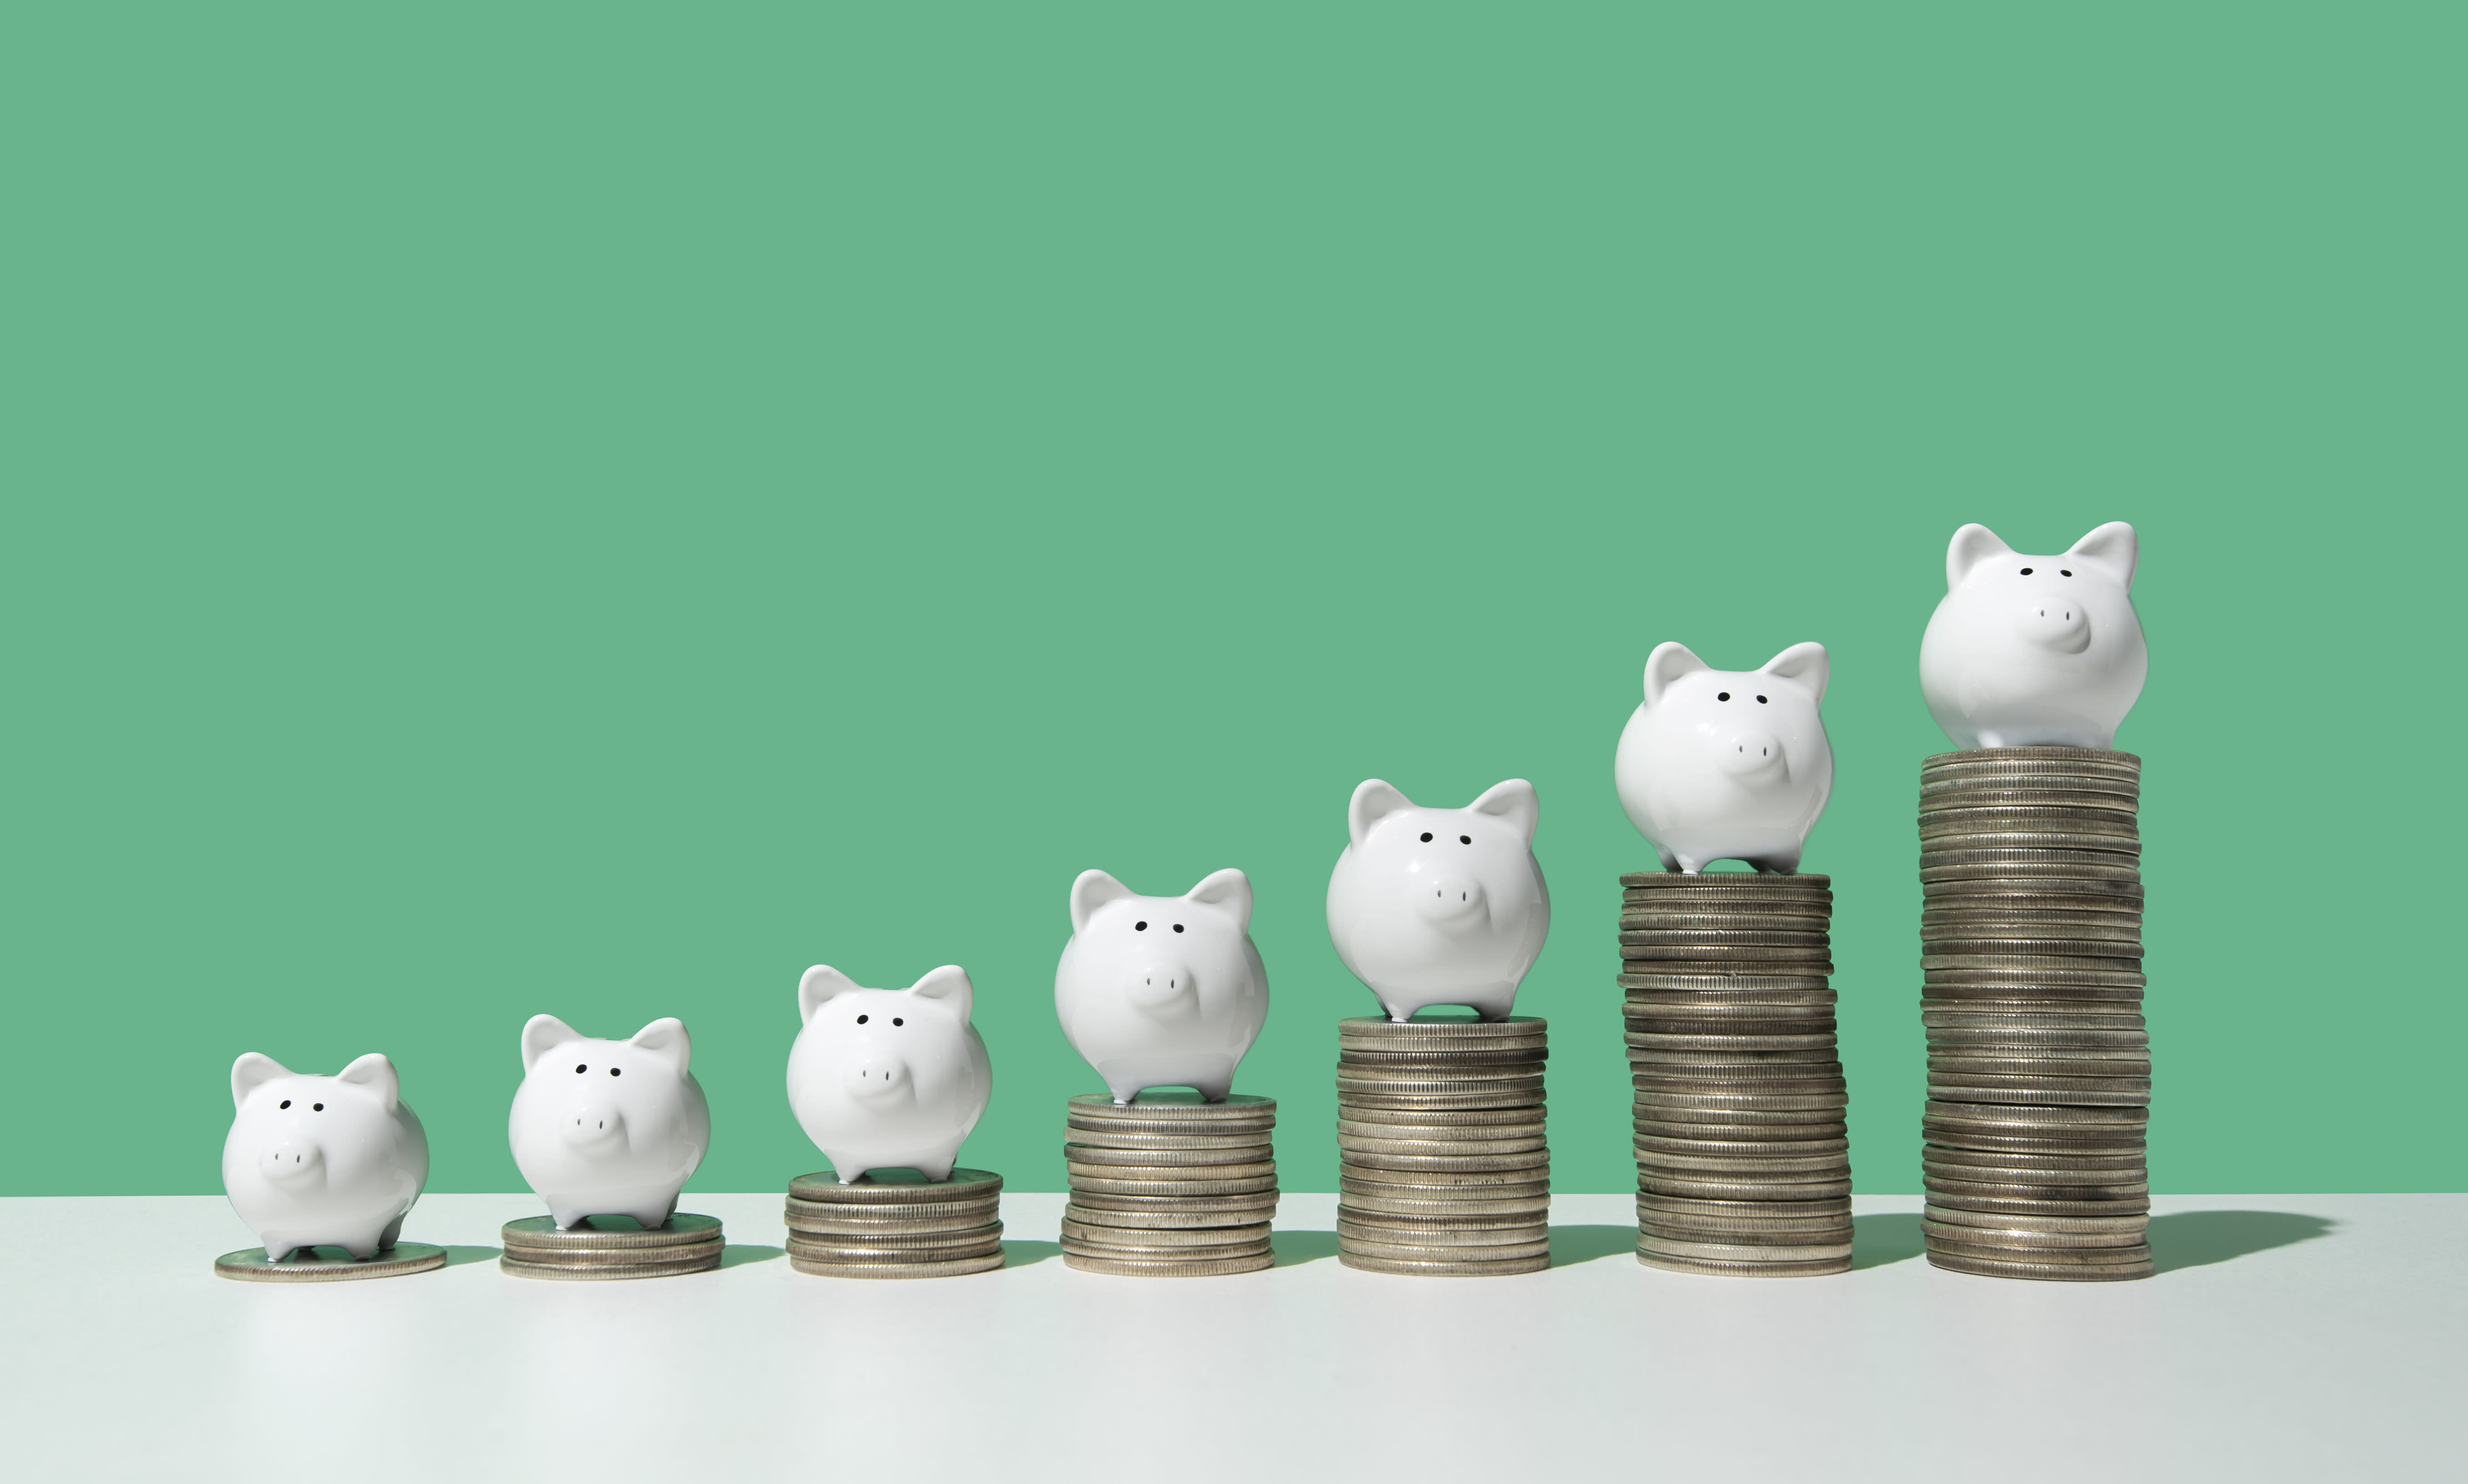 Online savings account rates drop with Fed outlook